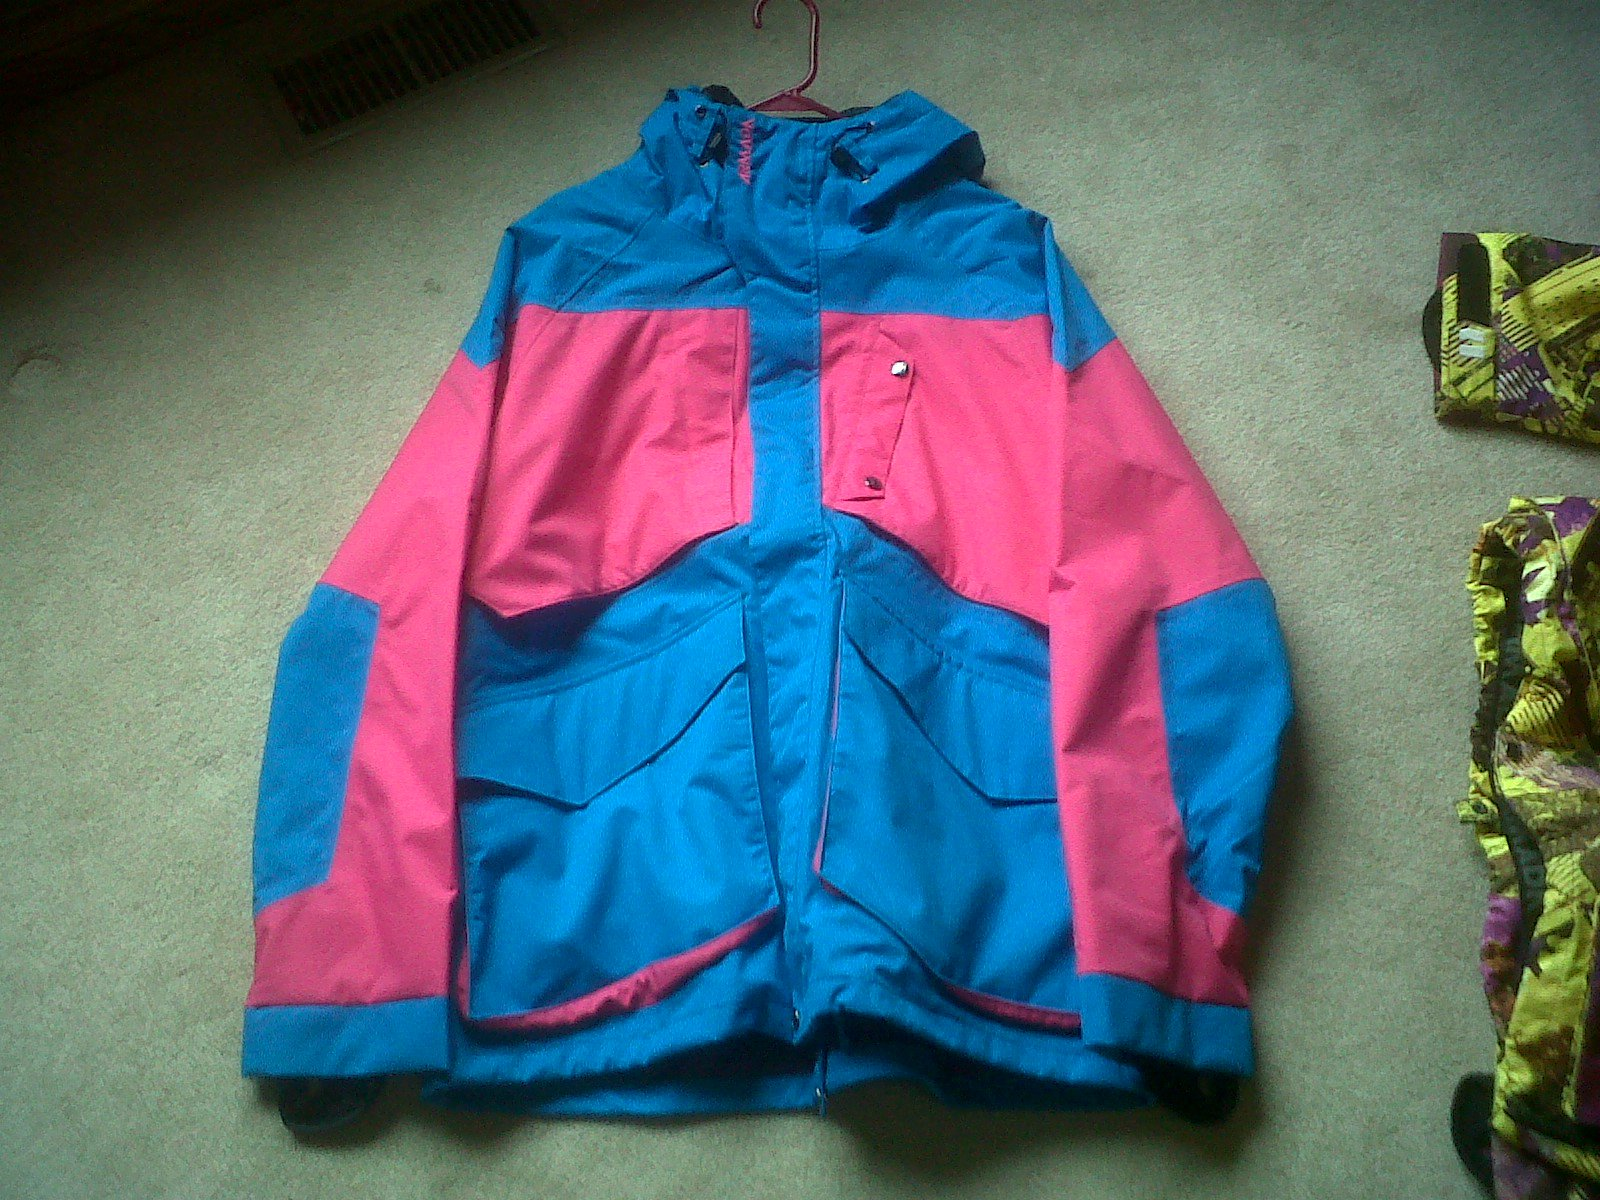 Armada jacket for sale, check thread